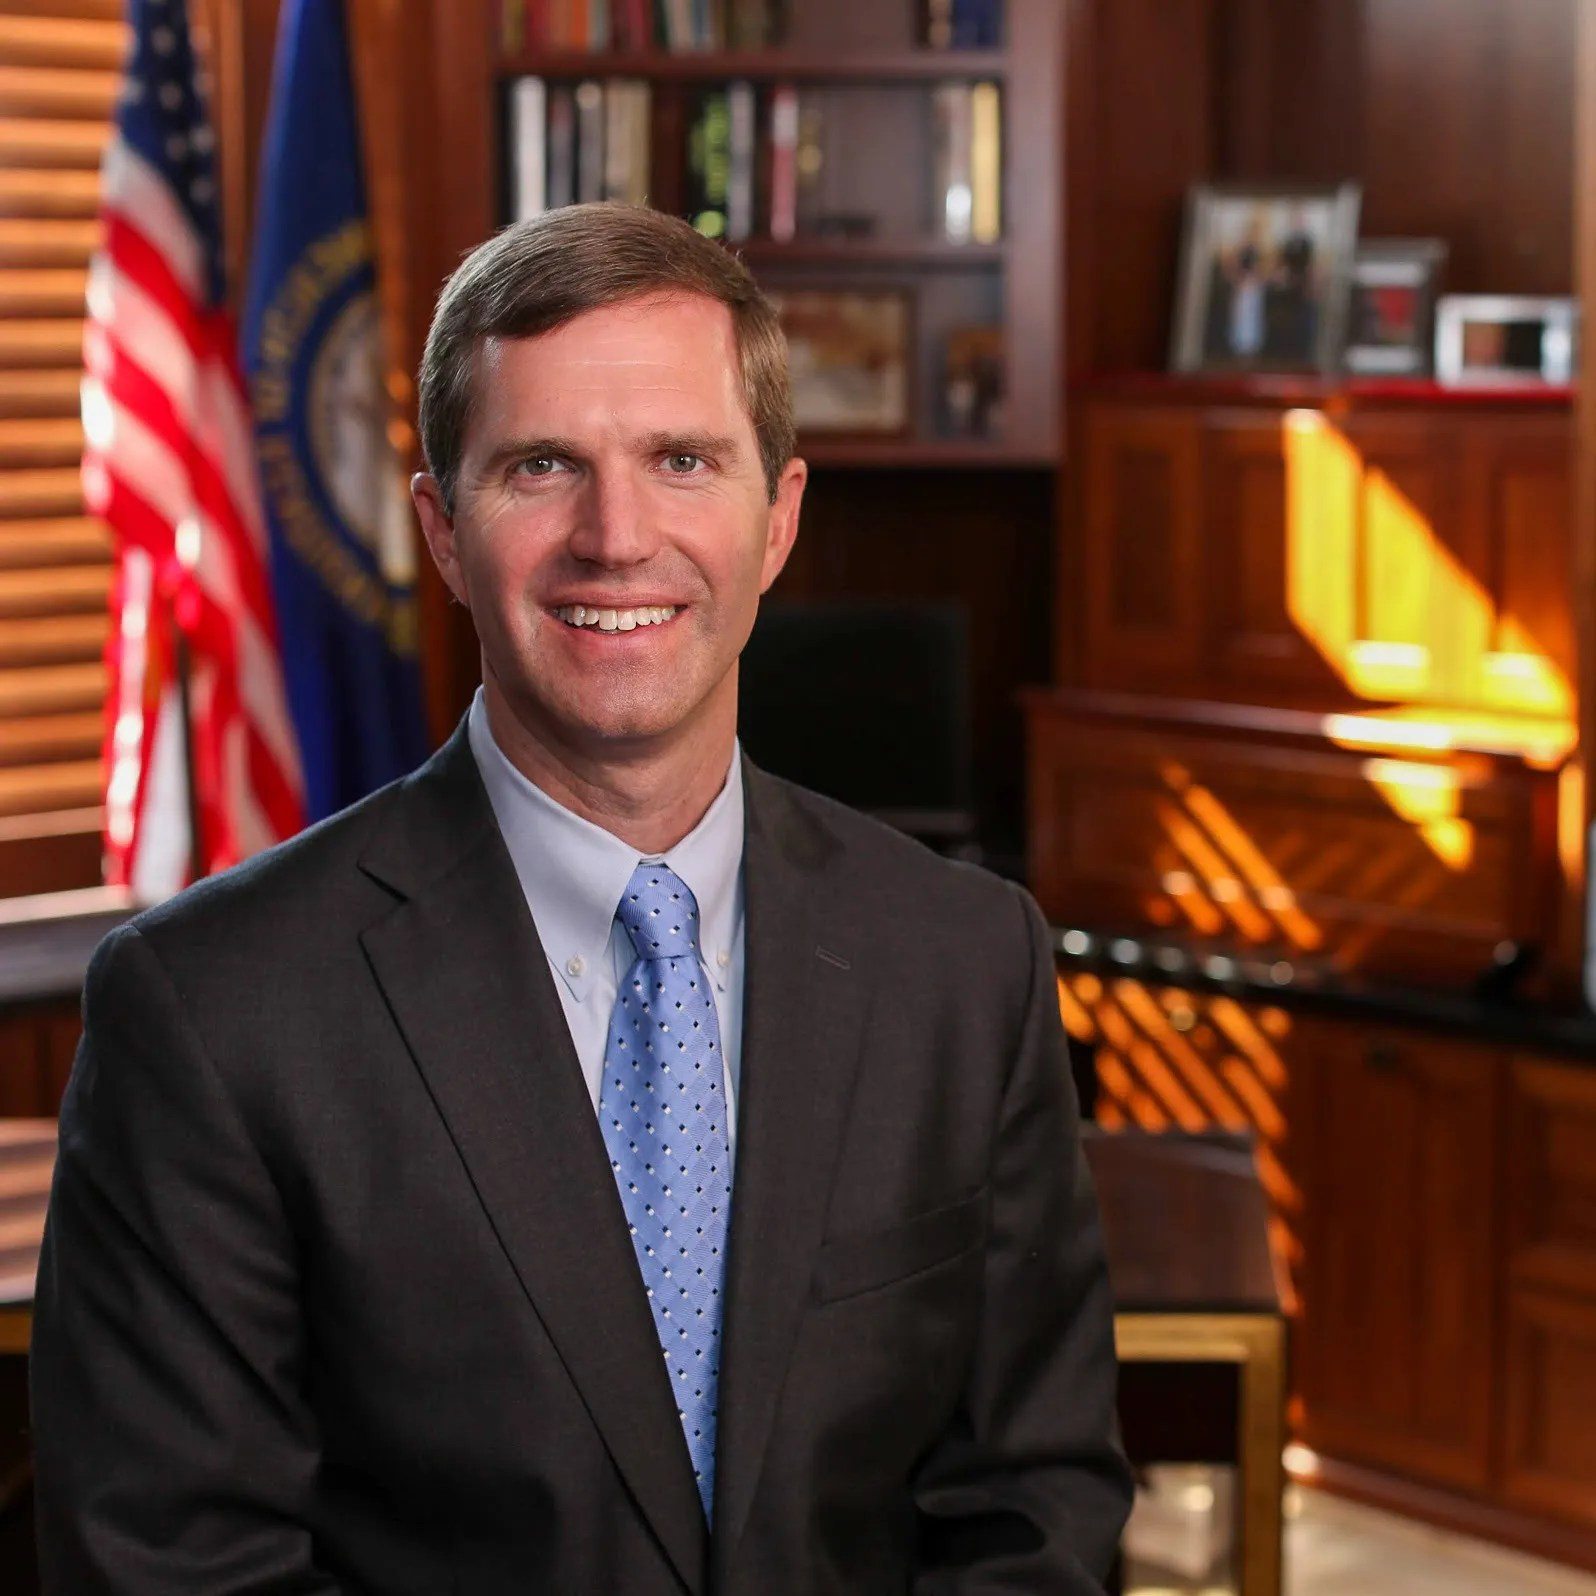 Andy Beshear I M Running For Governor To Lift Up Kentucky